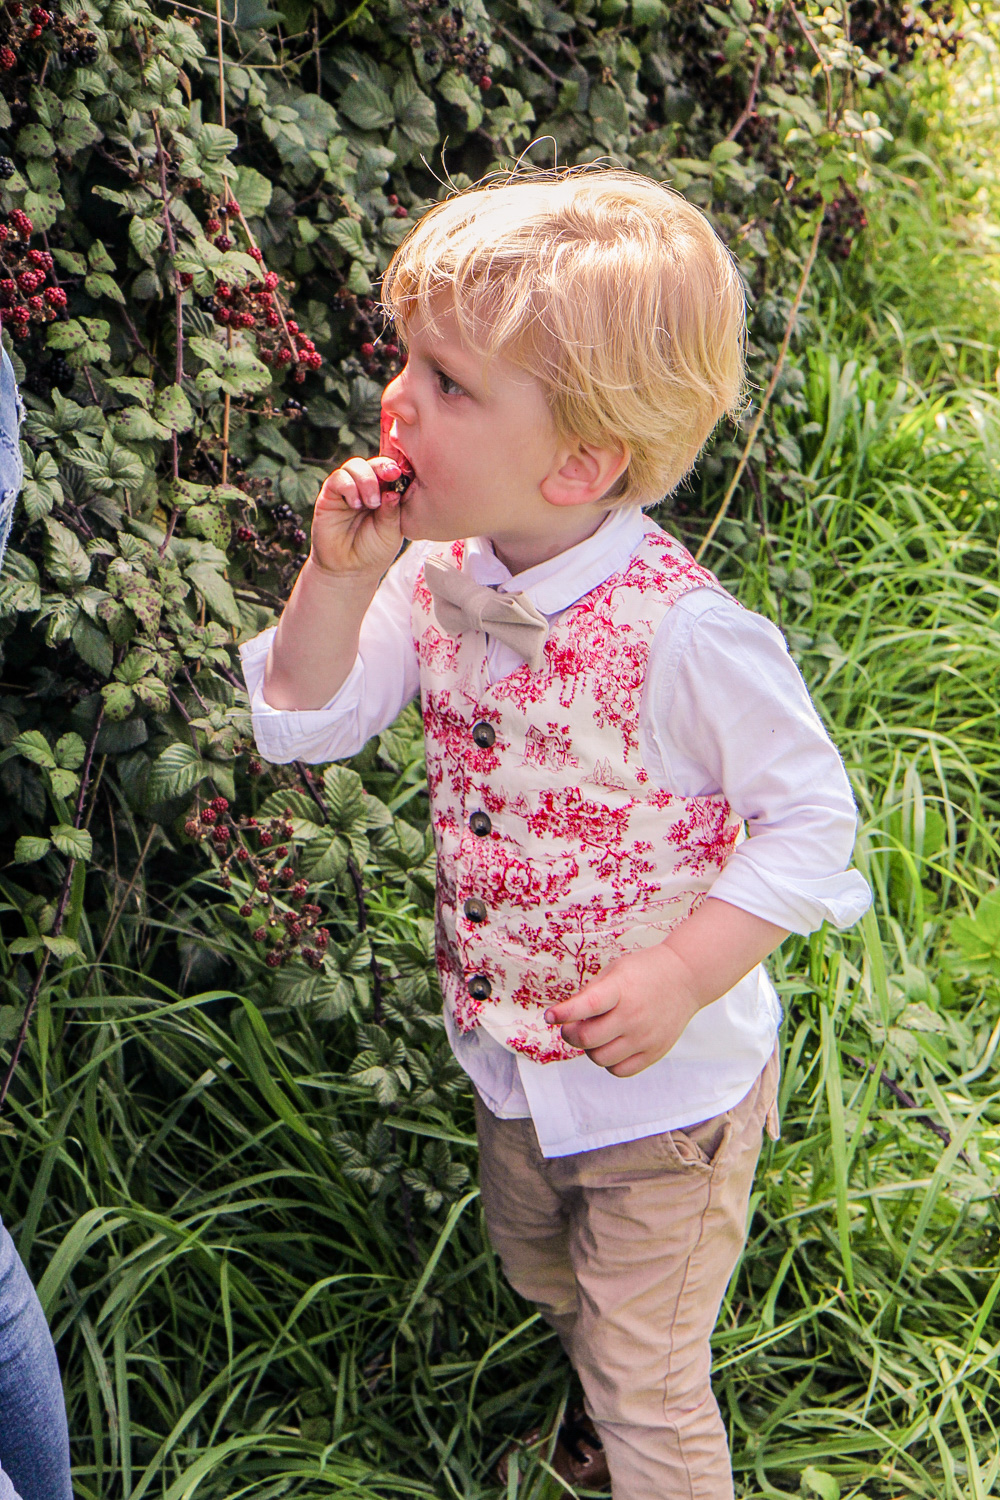 Little boy eating a blackberry from the bush